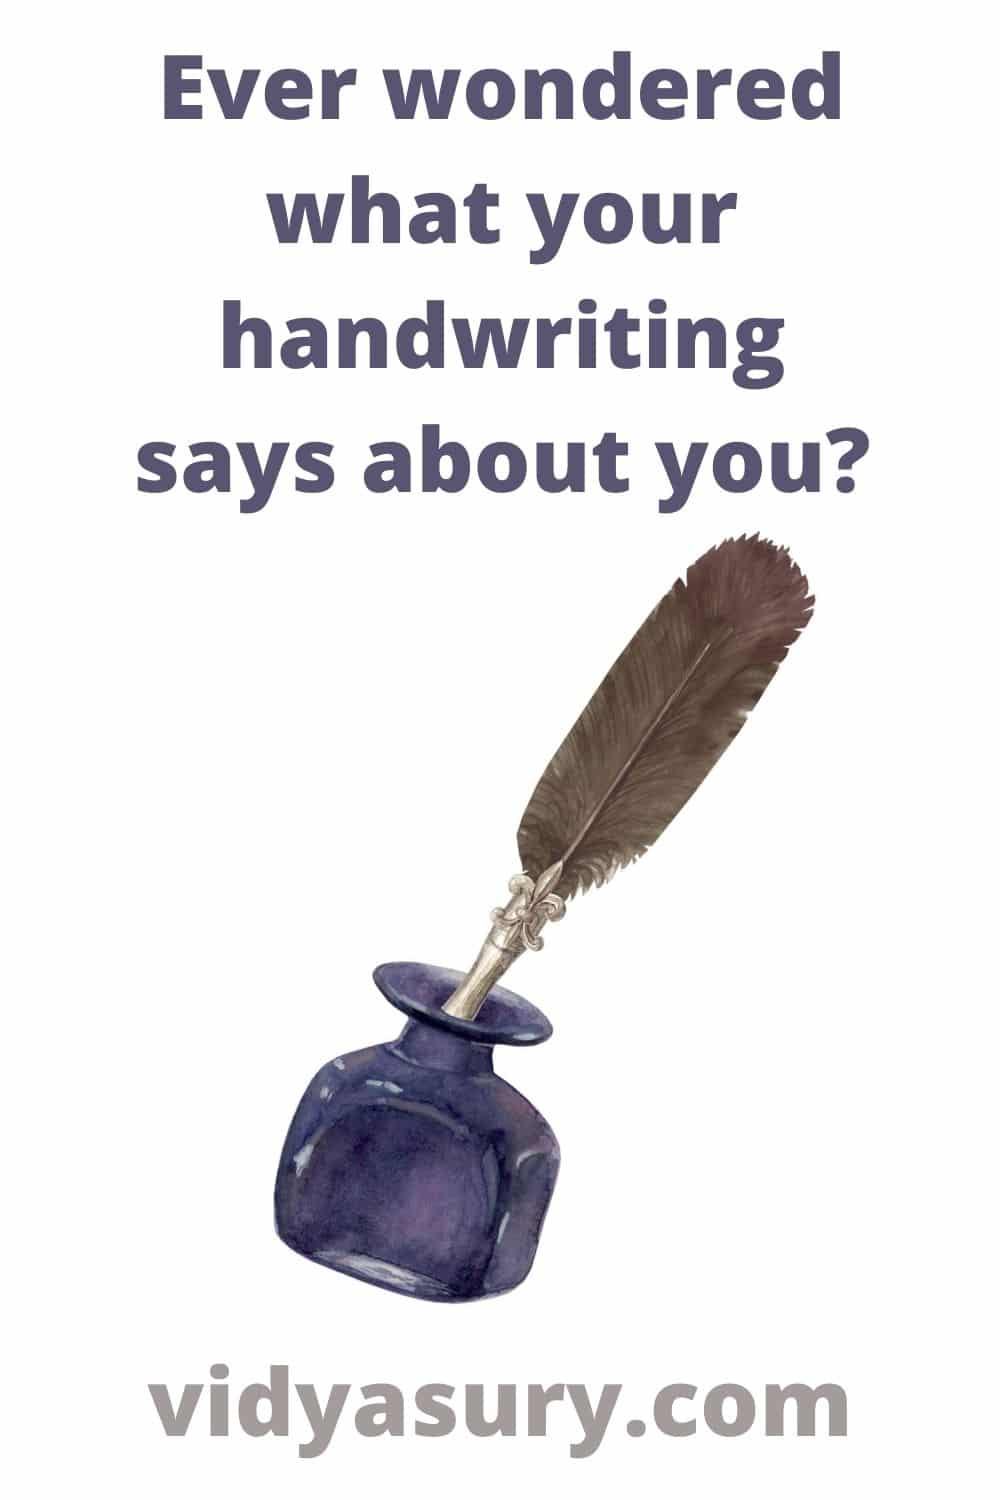 Ever wondered what your handwriting says about you